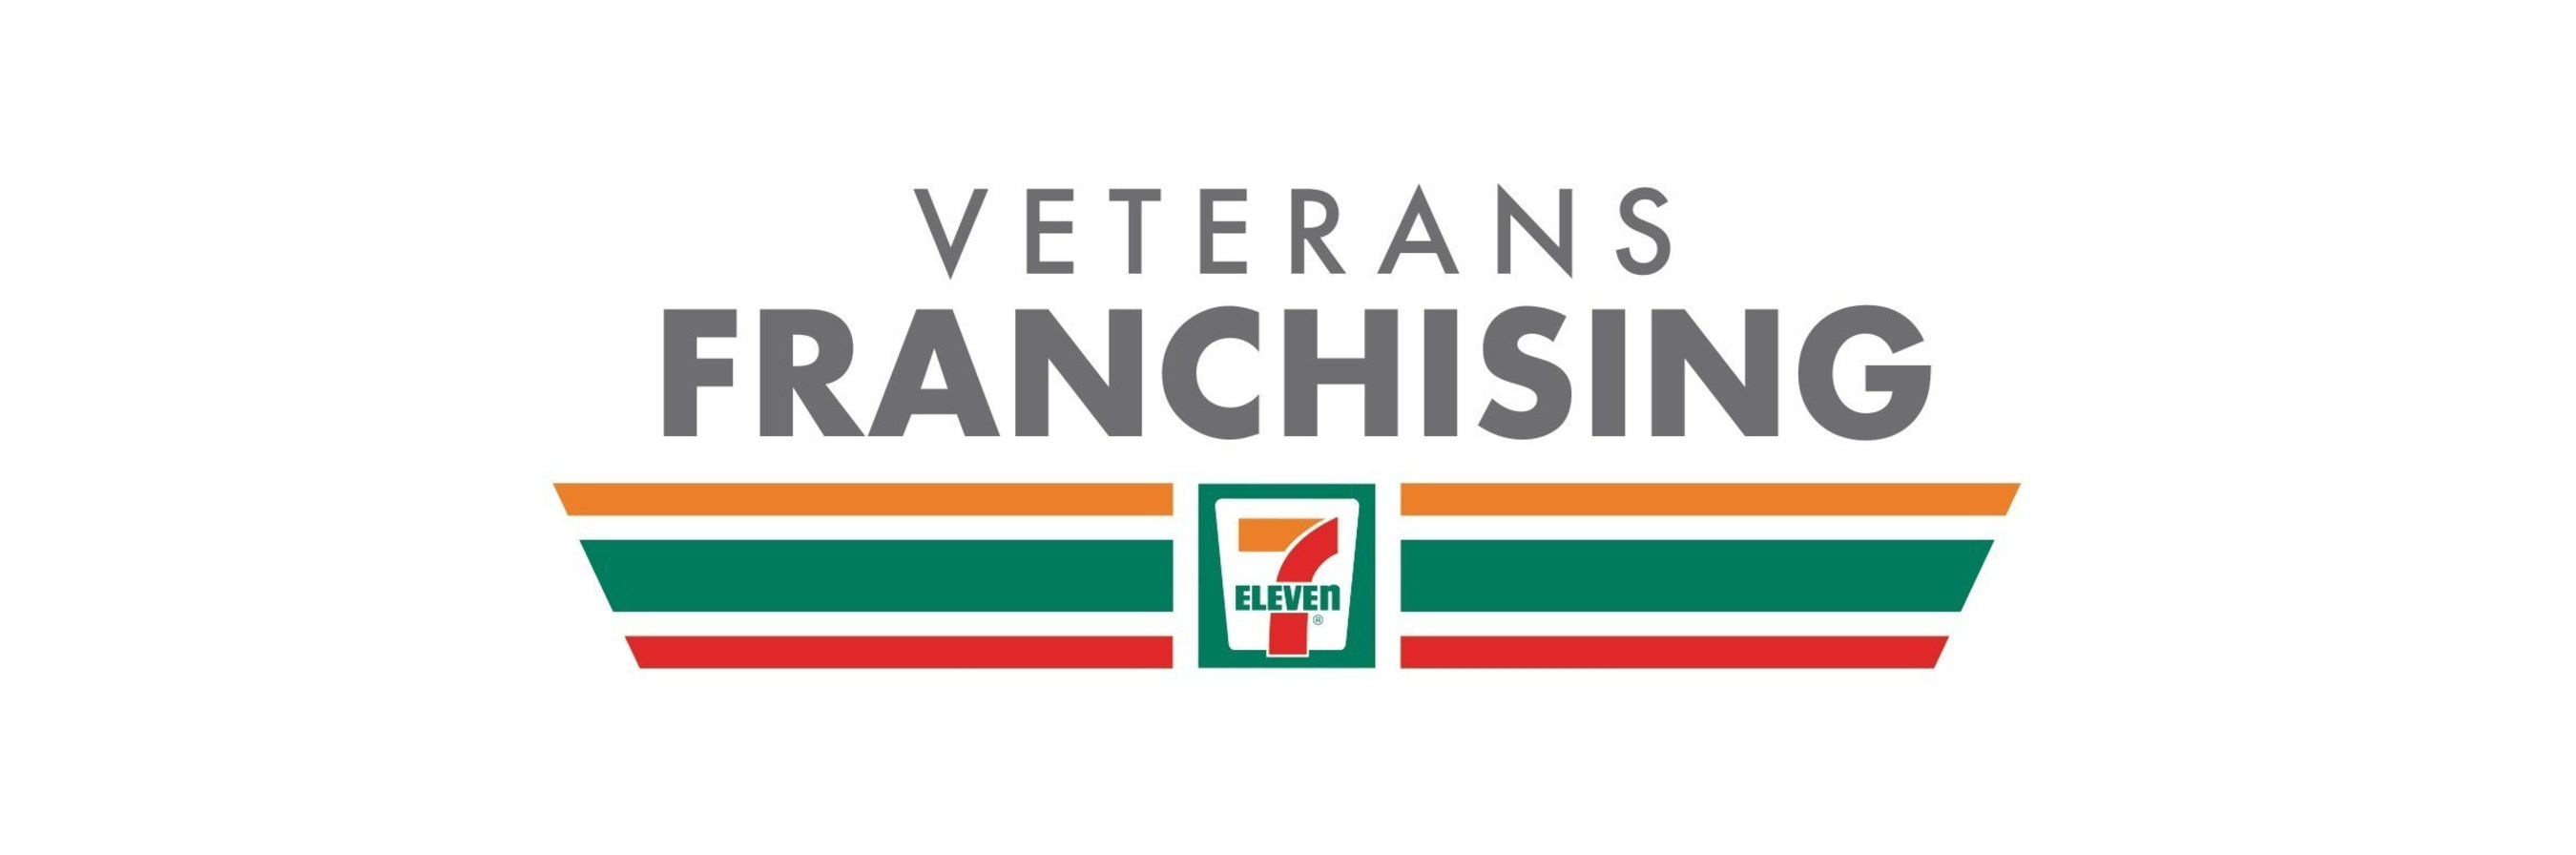 7-Eleven Military Veterans Franchise Program reaches to recruit 100 qualified veterans and provide $2 million ...